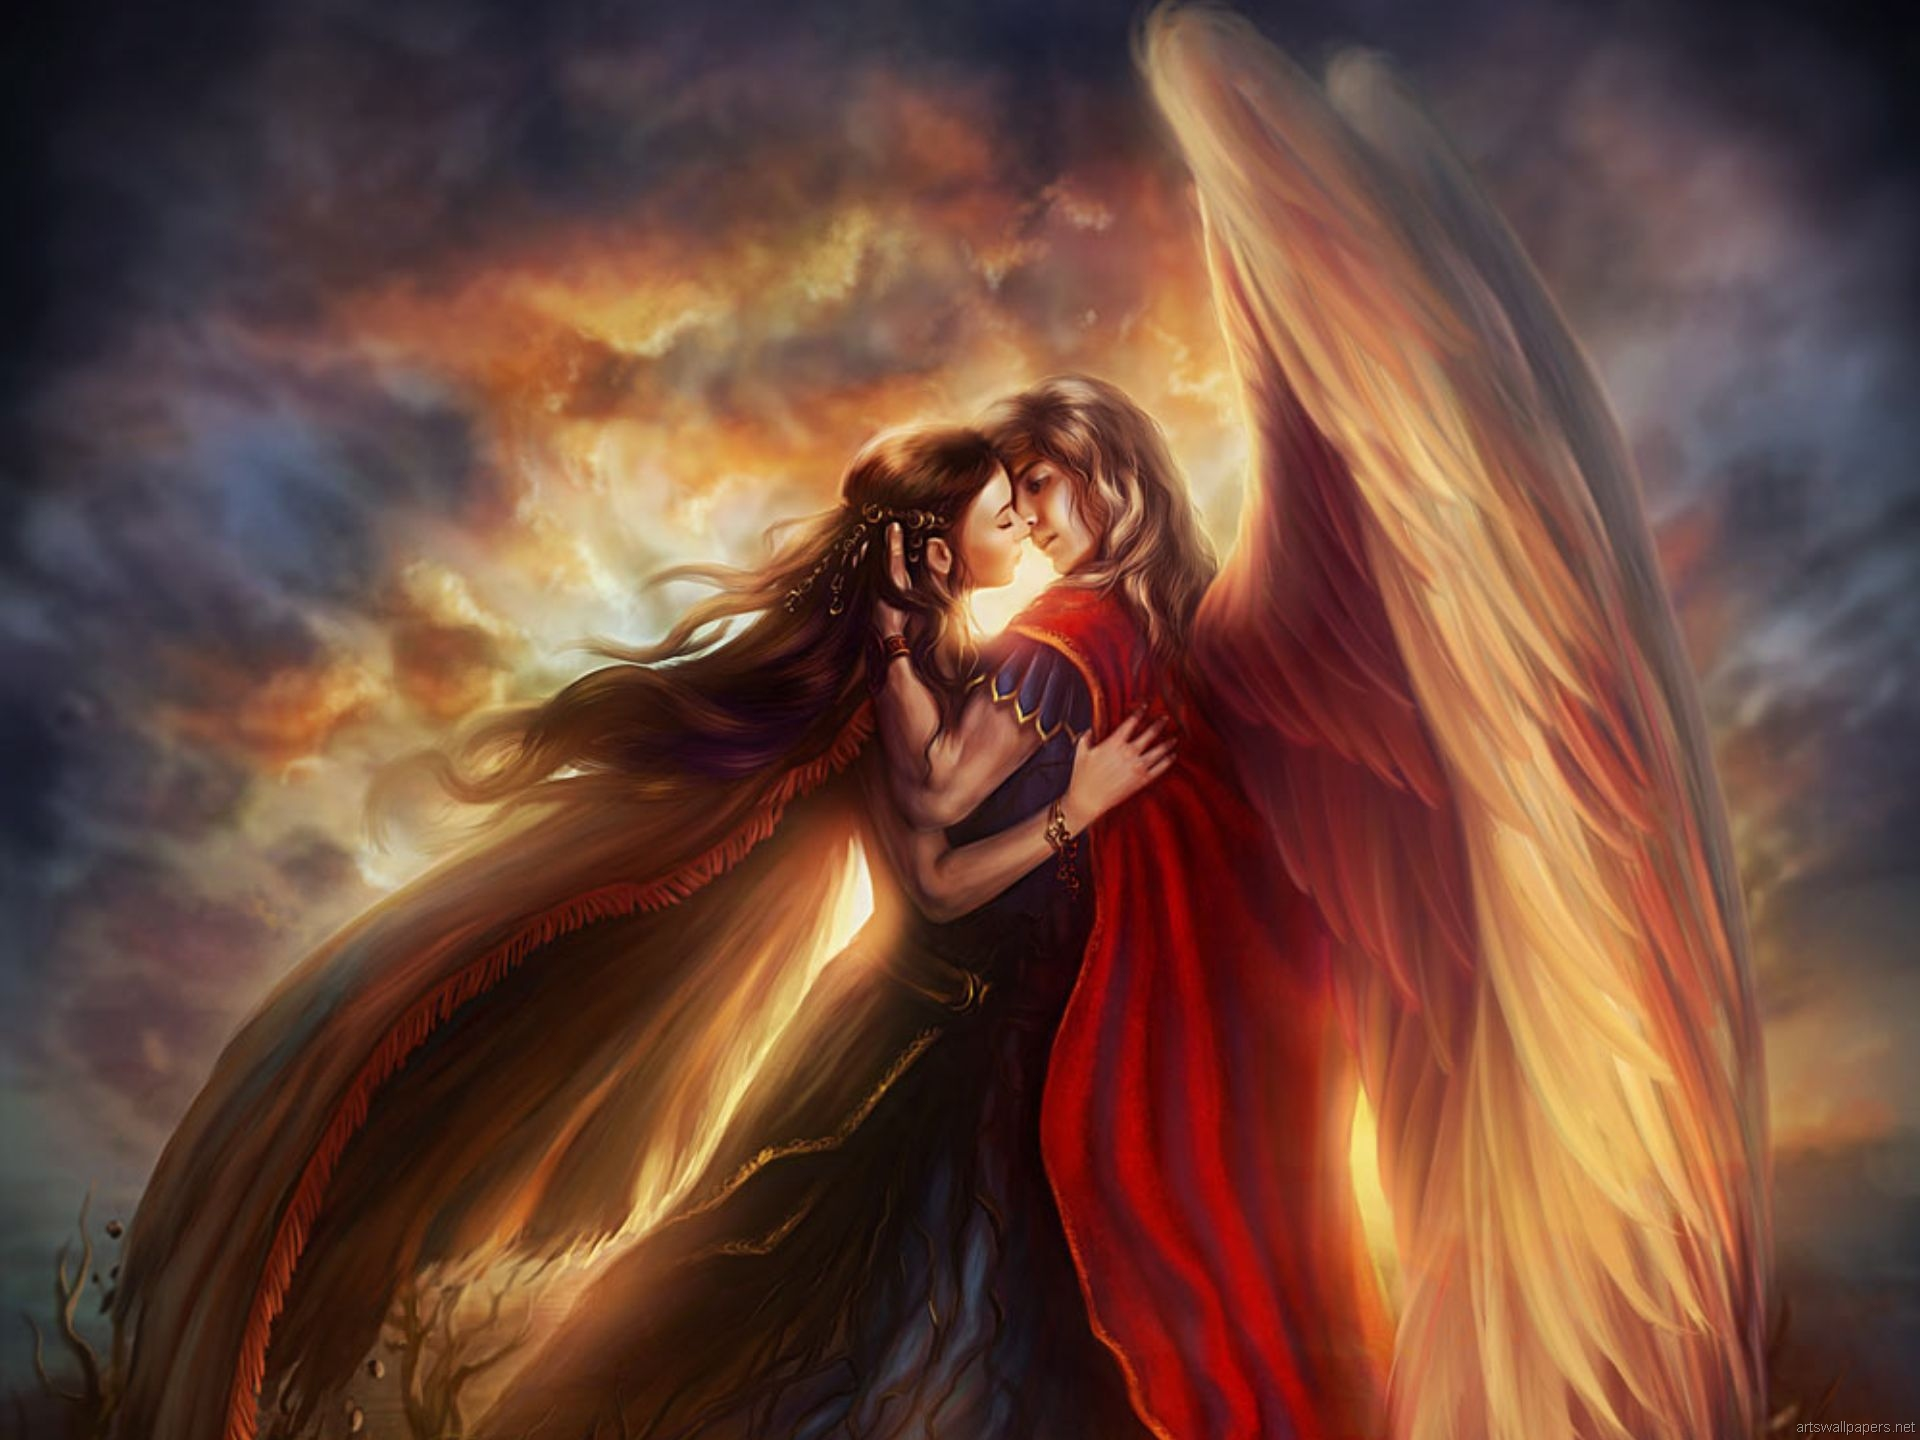 two angels Wallpaper Background 26630 1920x1440